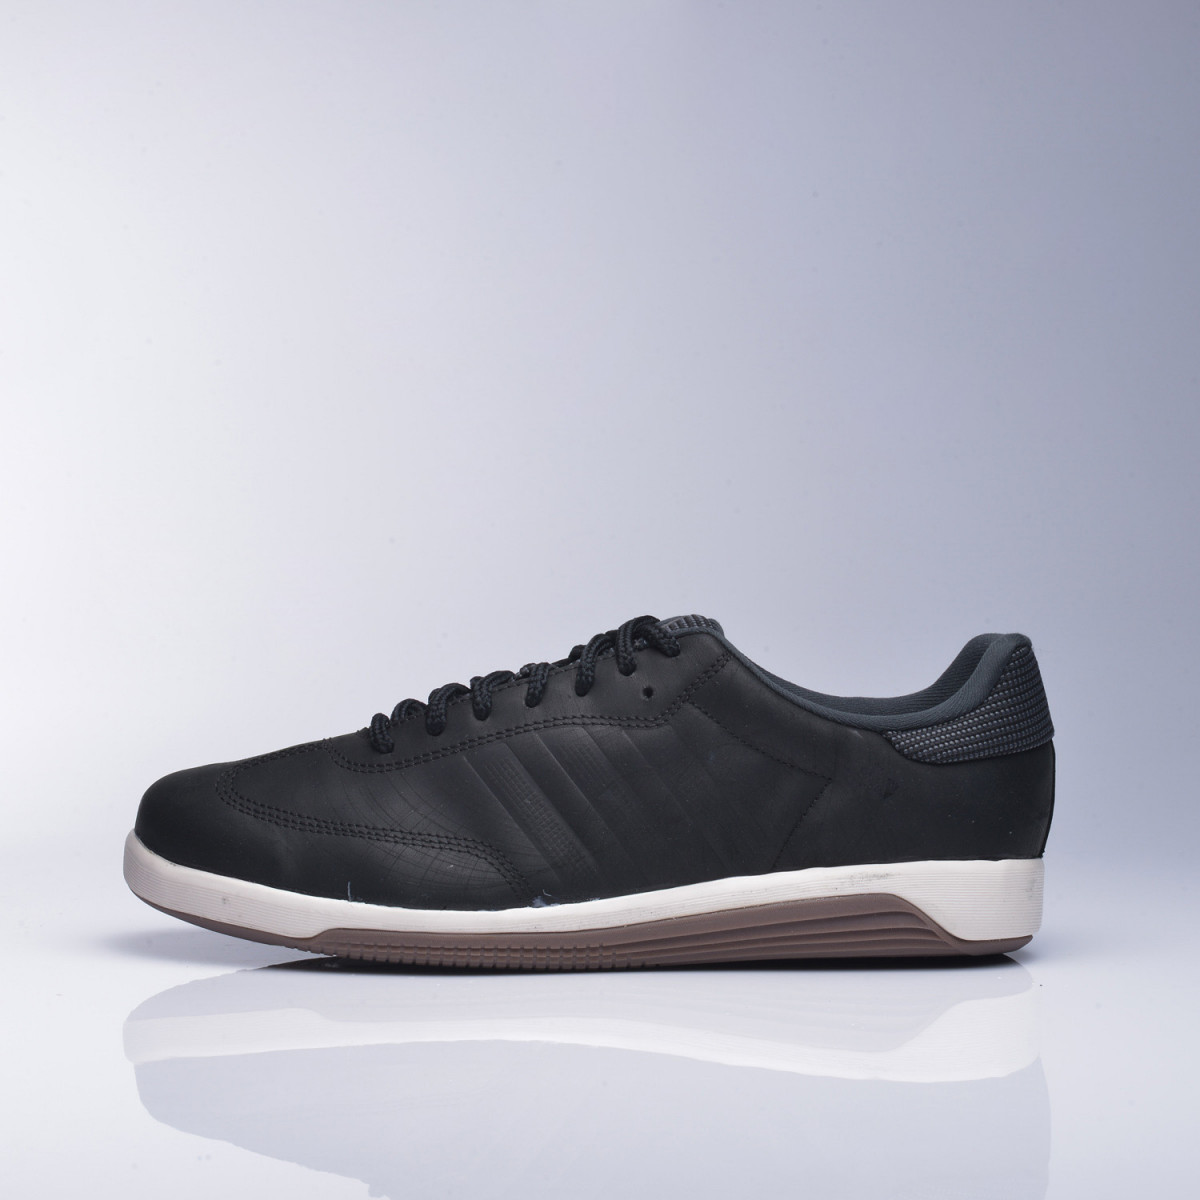 Zapatillas Adidas Universal Tr Leather